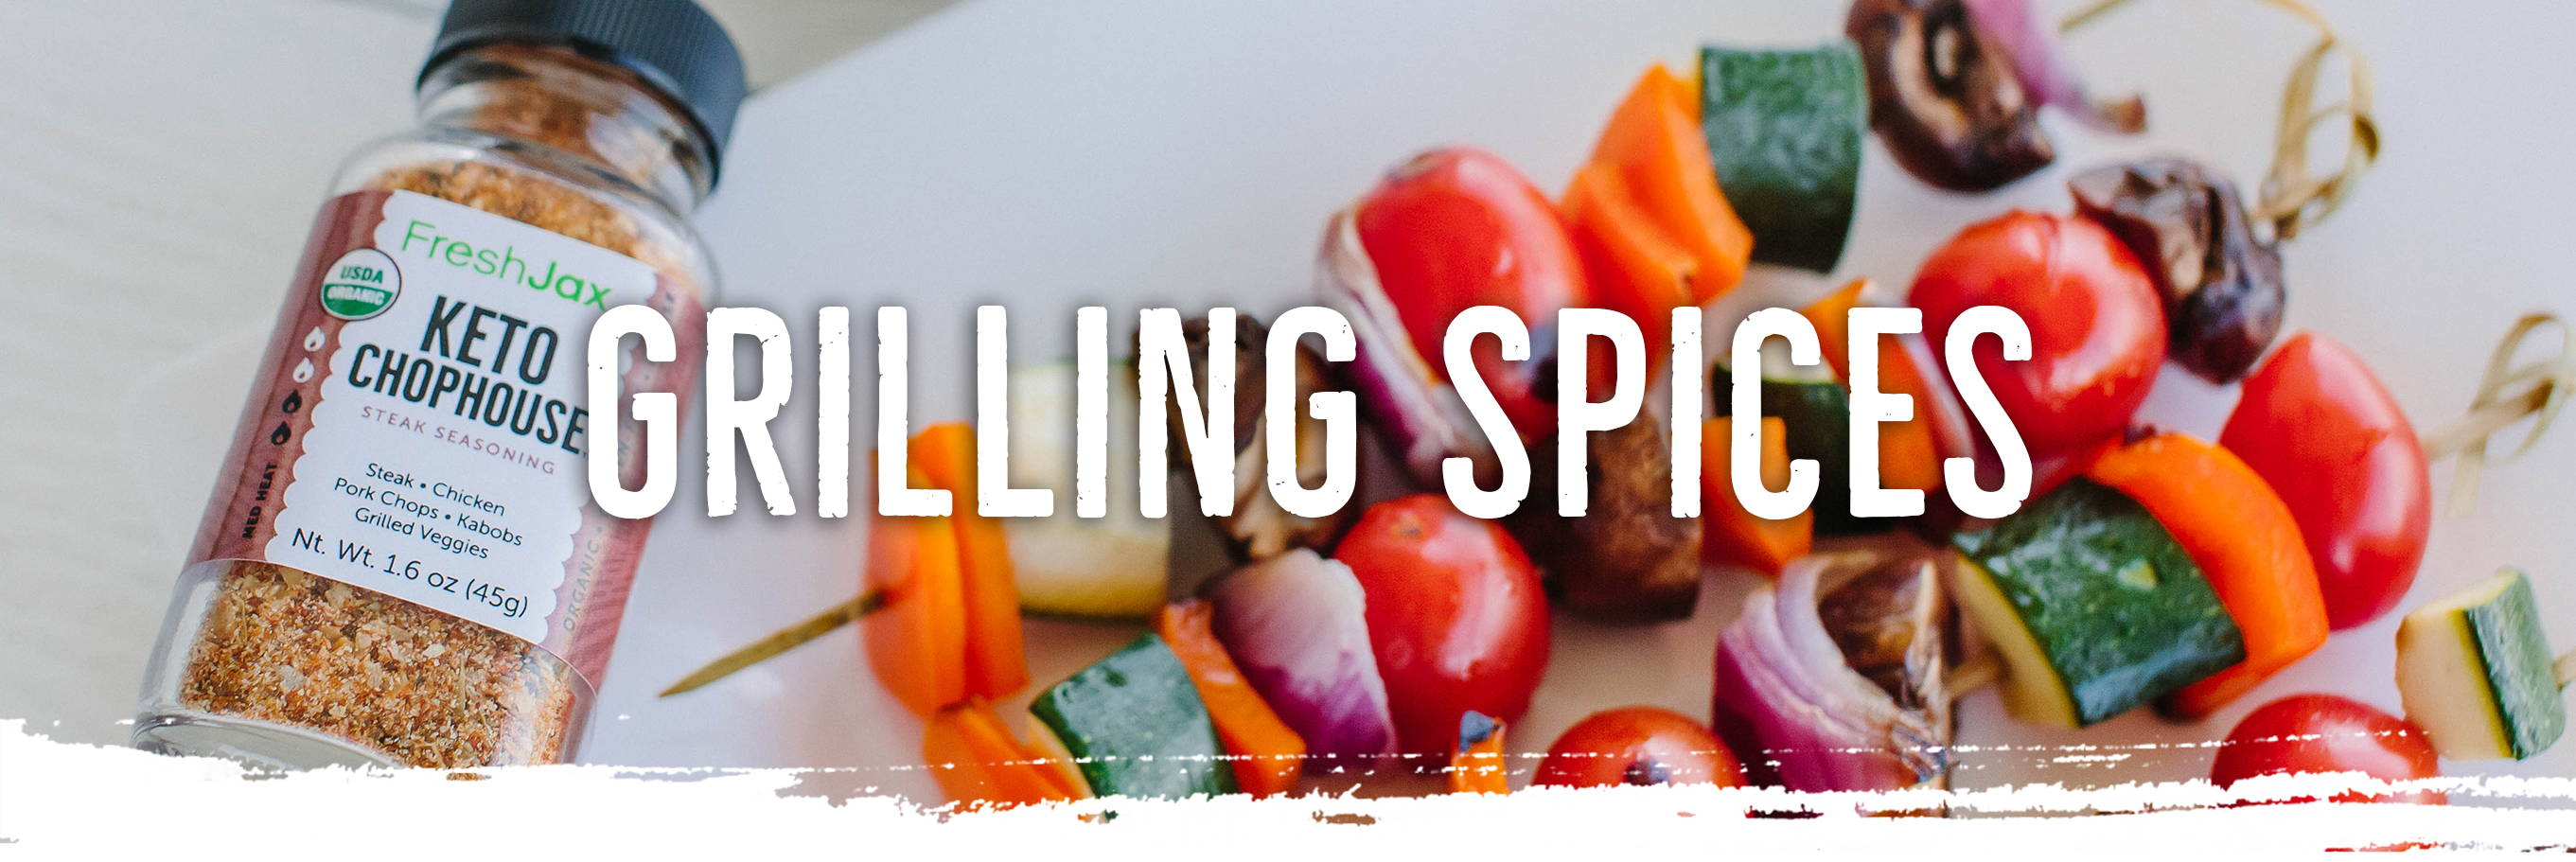 Grilling Spices